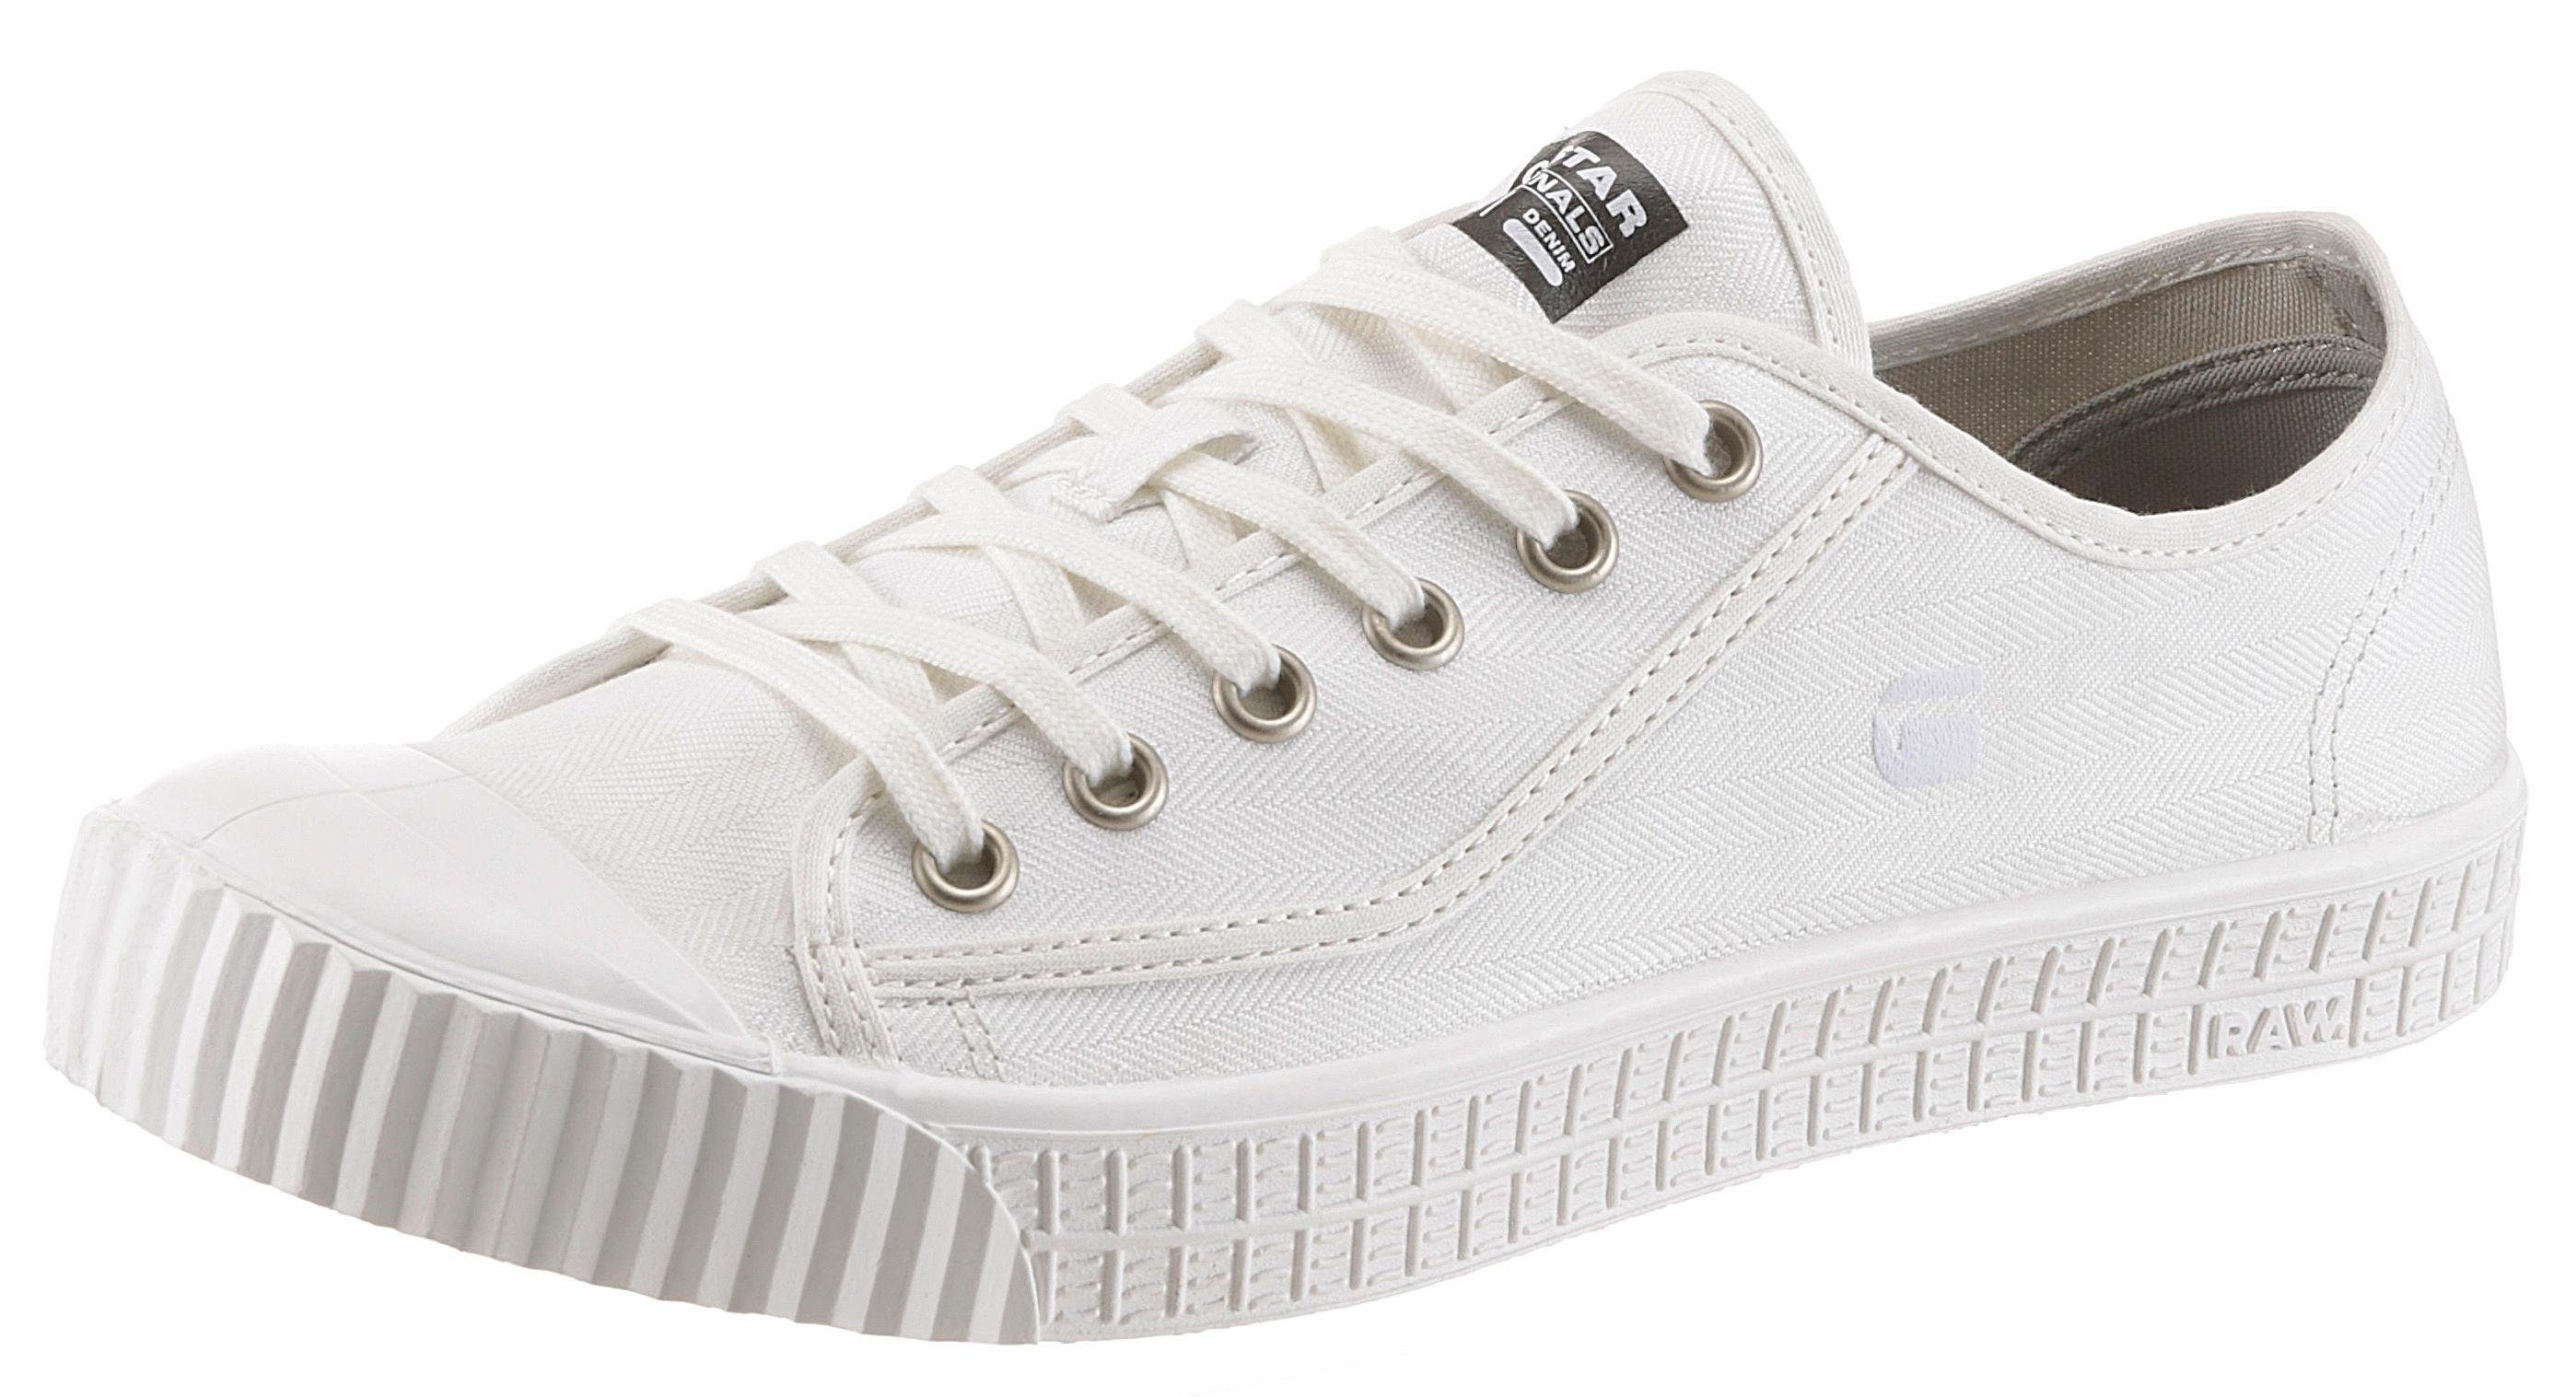 G Star G-star Witte Sneakers Premières Rovulc Hb Faible AceK2an